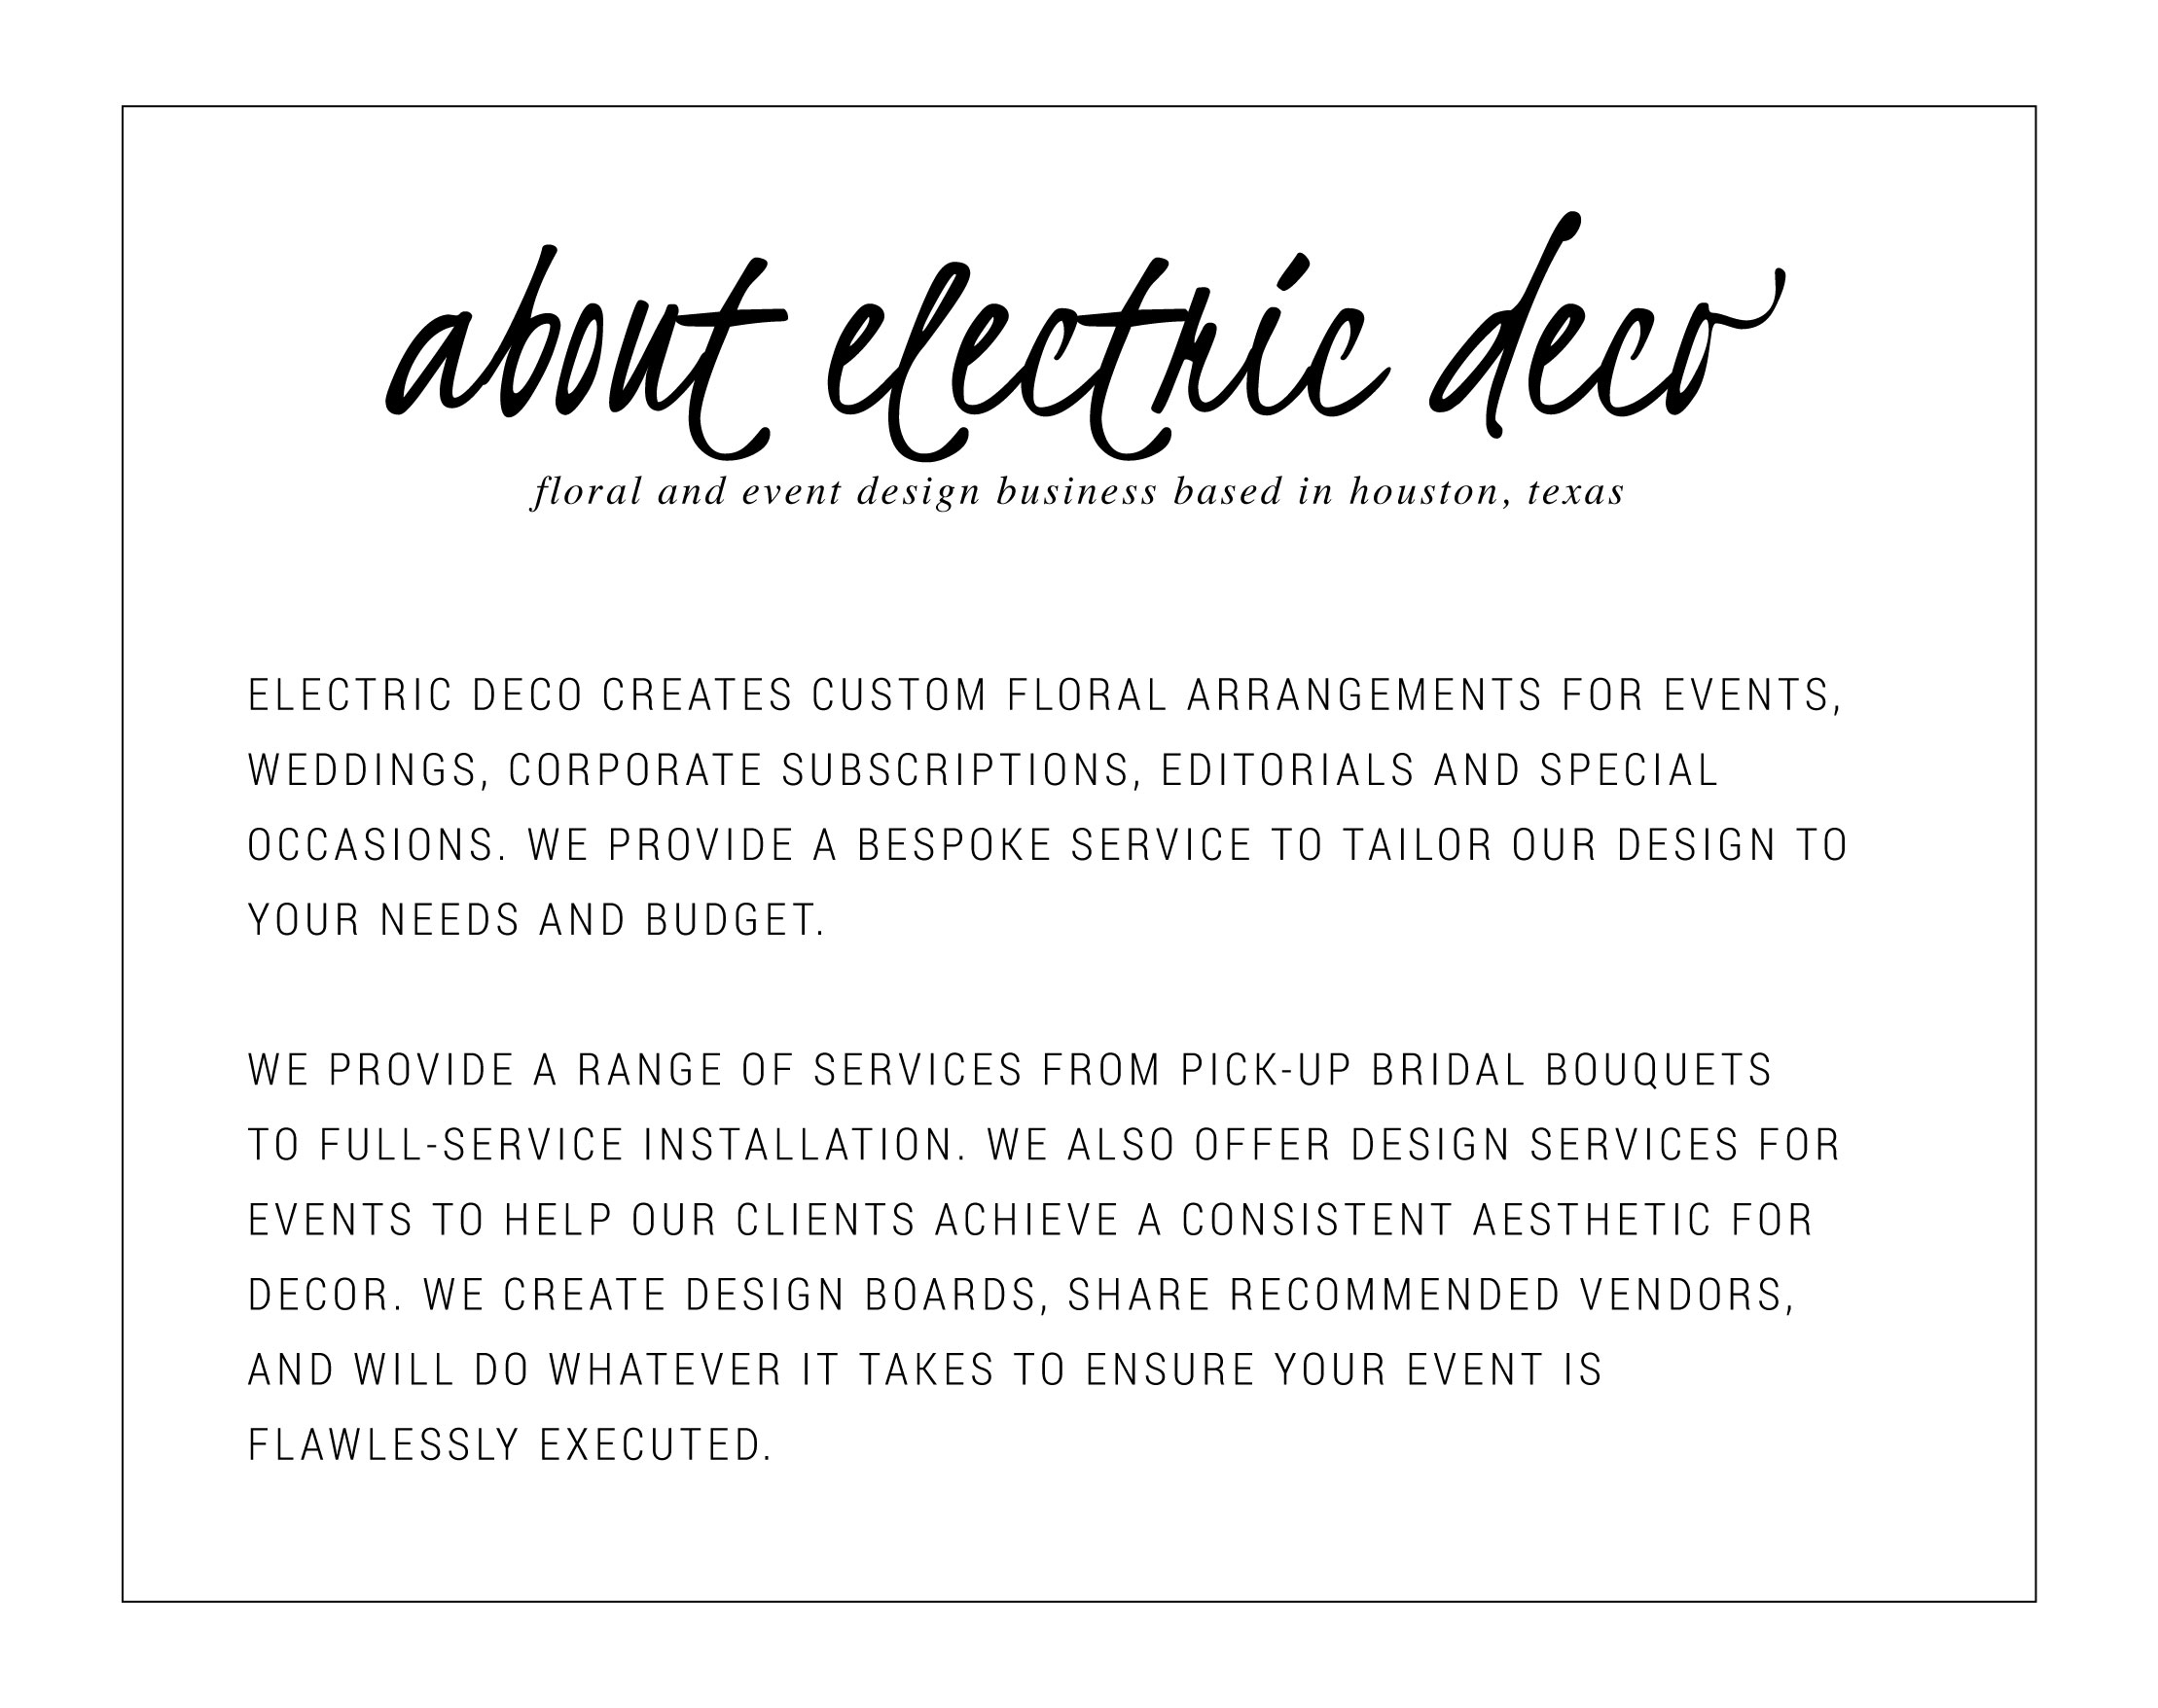 Electric Deco Flowers and Design